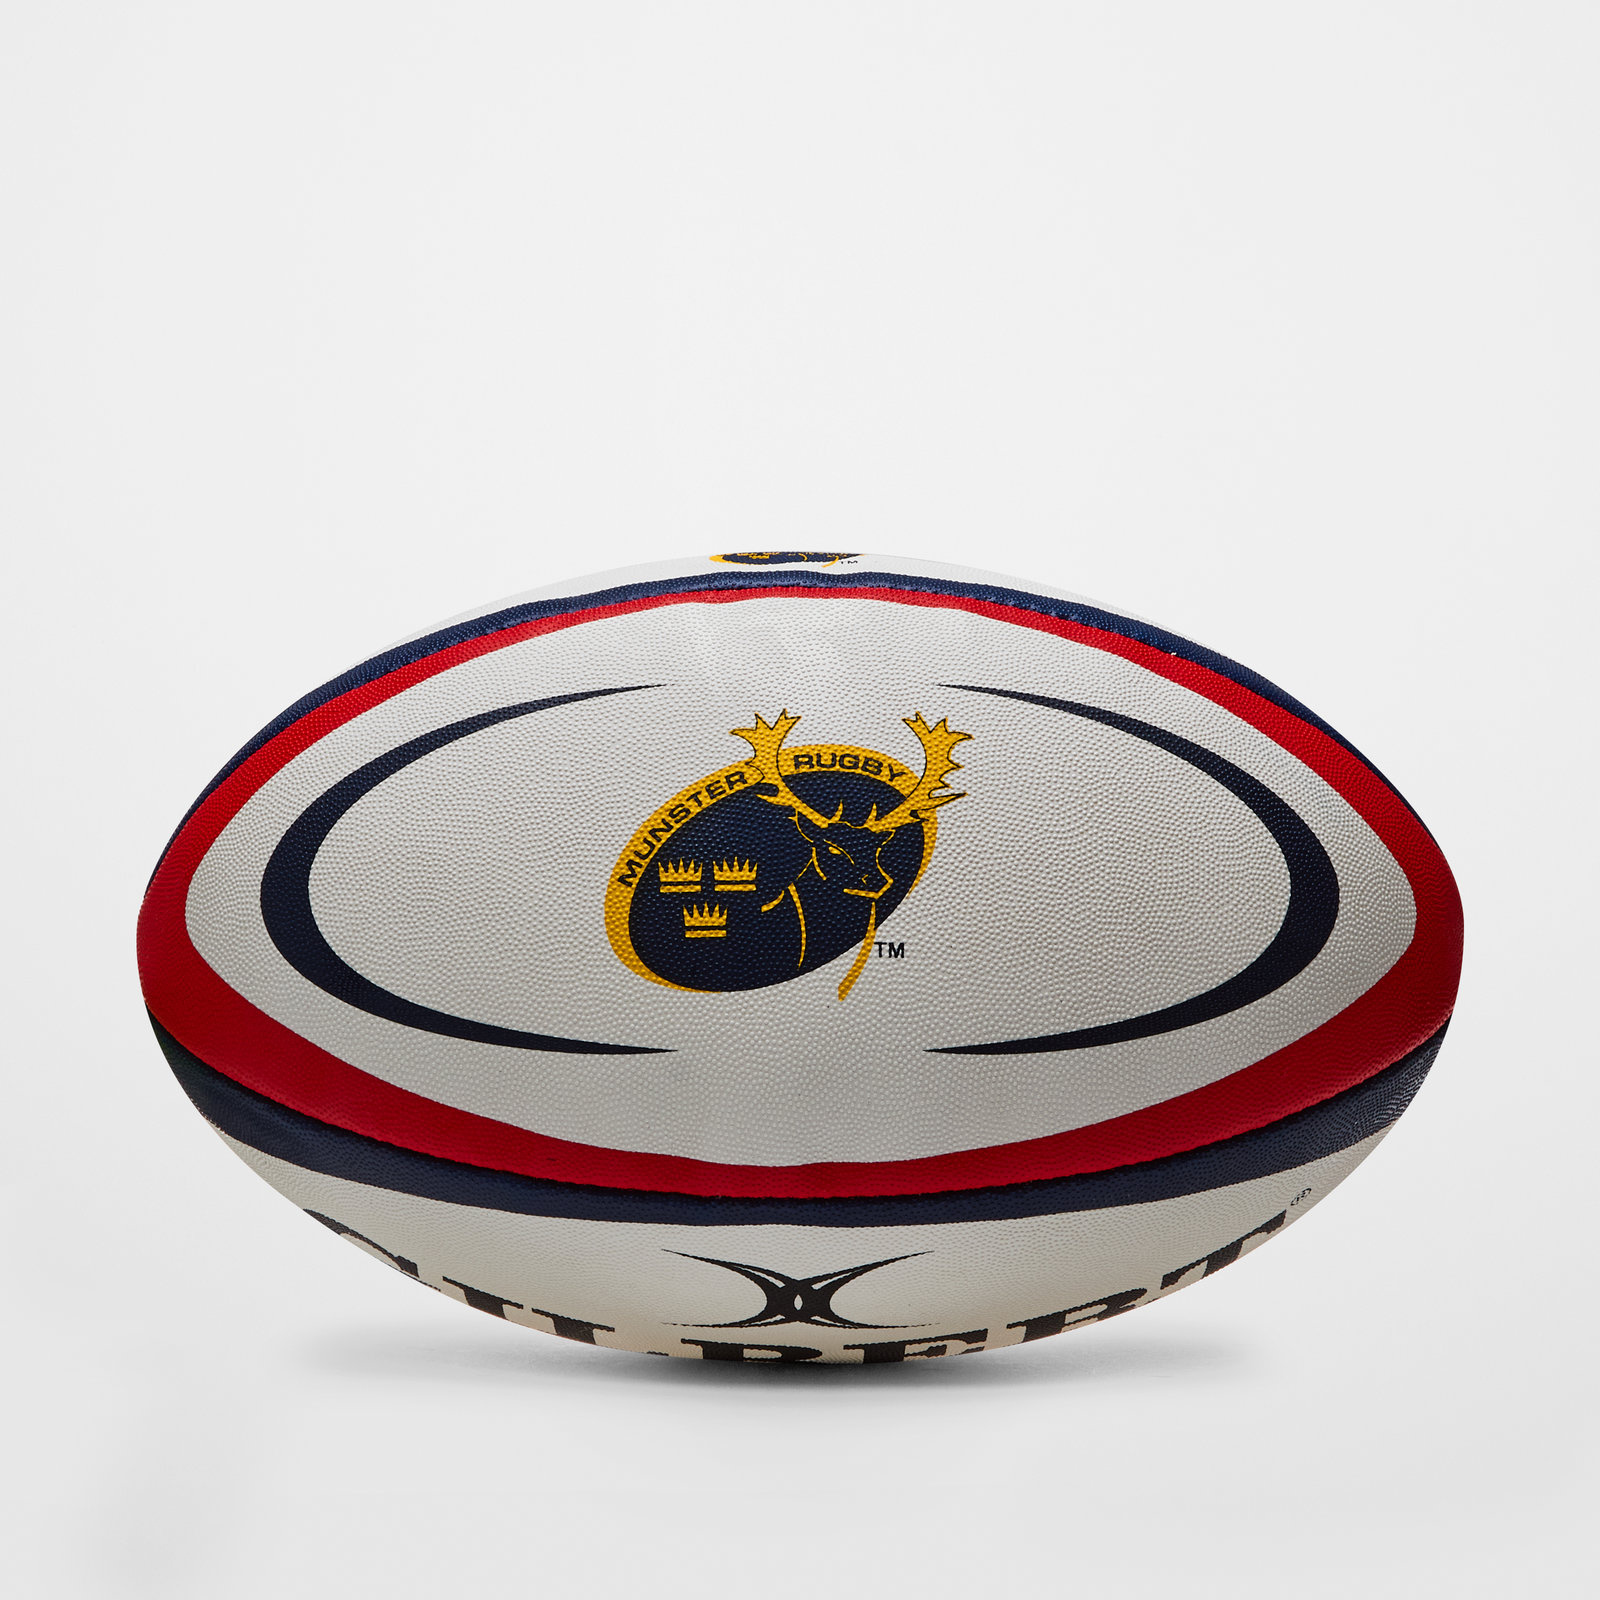 Image of Munster Official Replica Rugby Ball